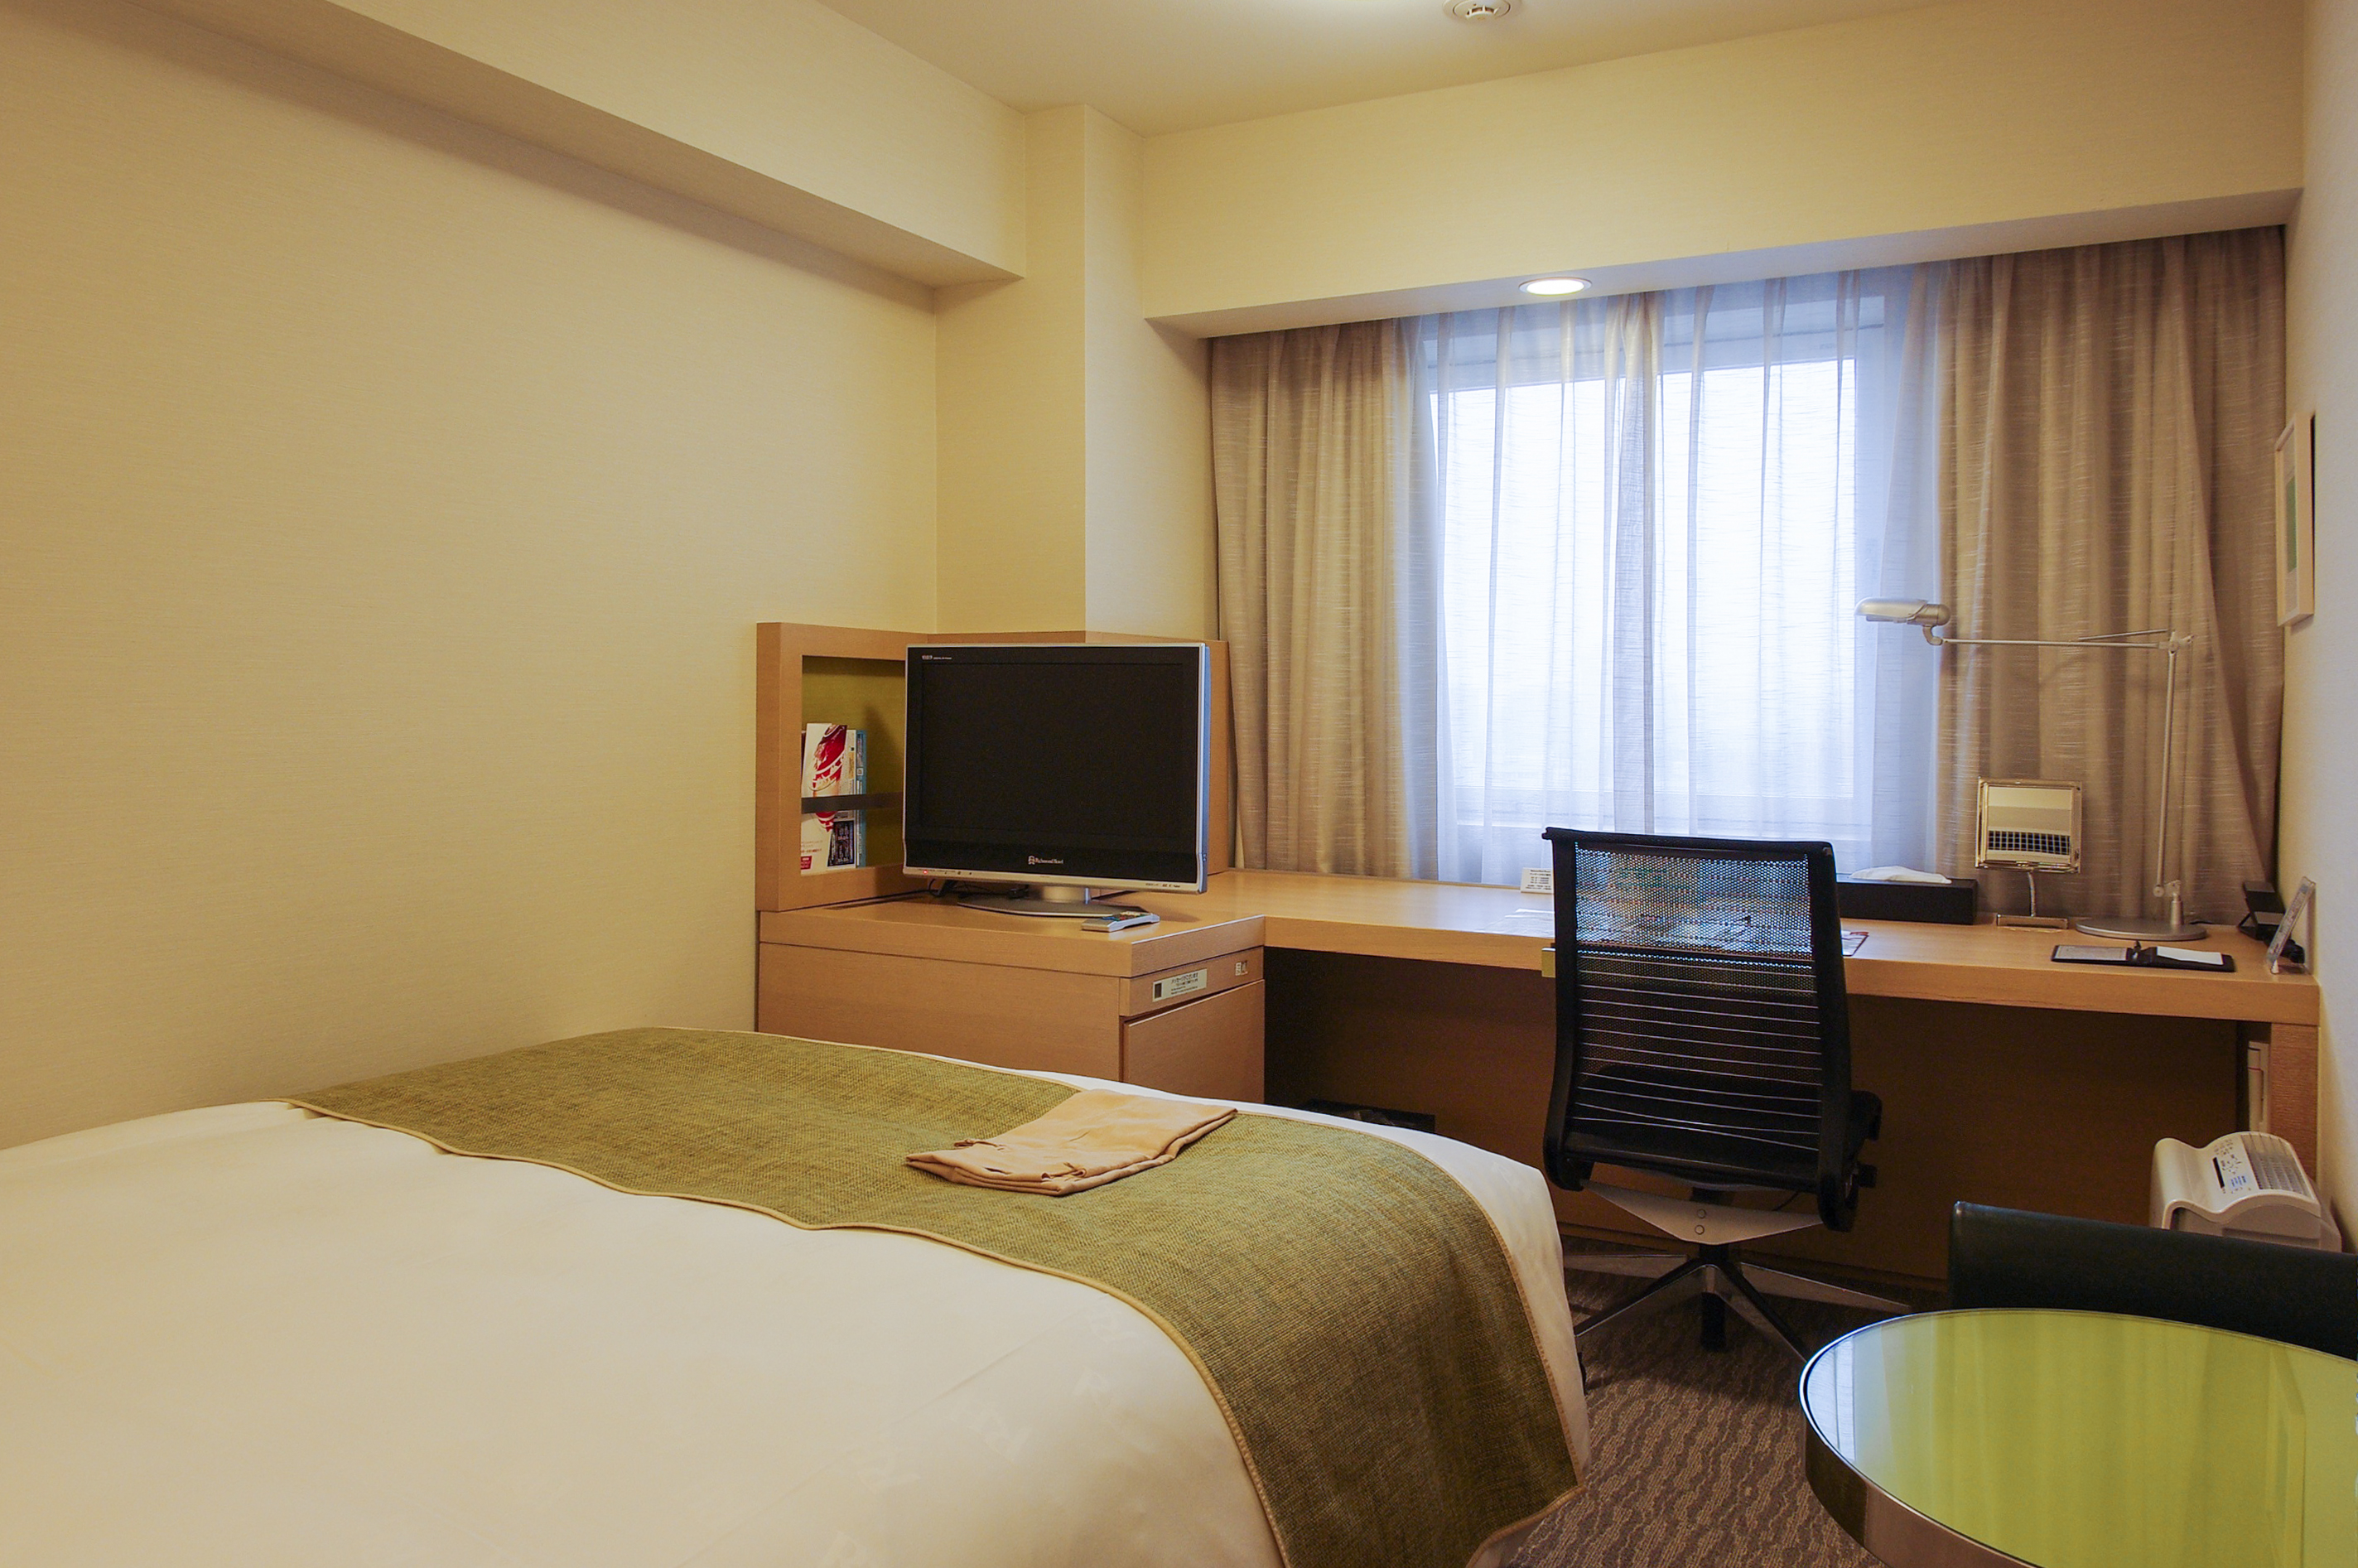 Bedroom Hotel Rooms Adelaide